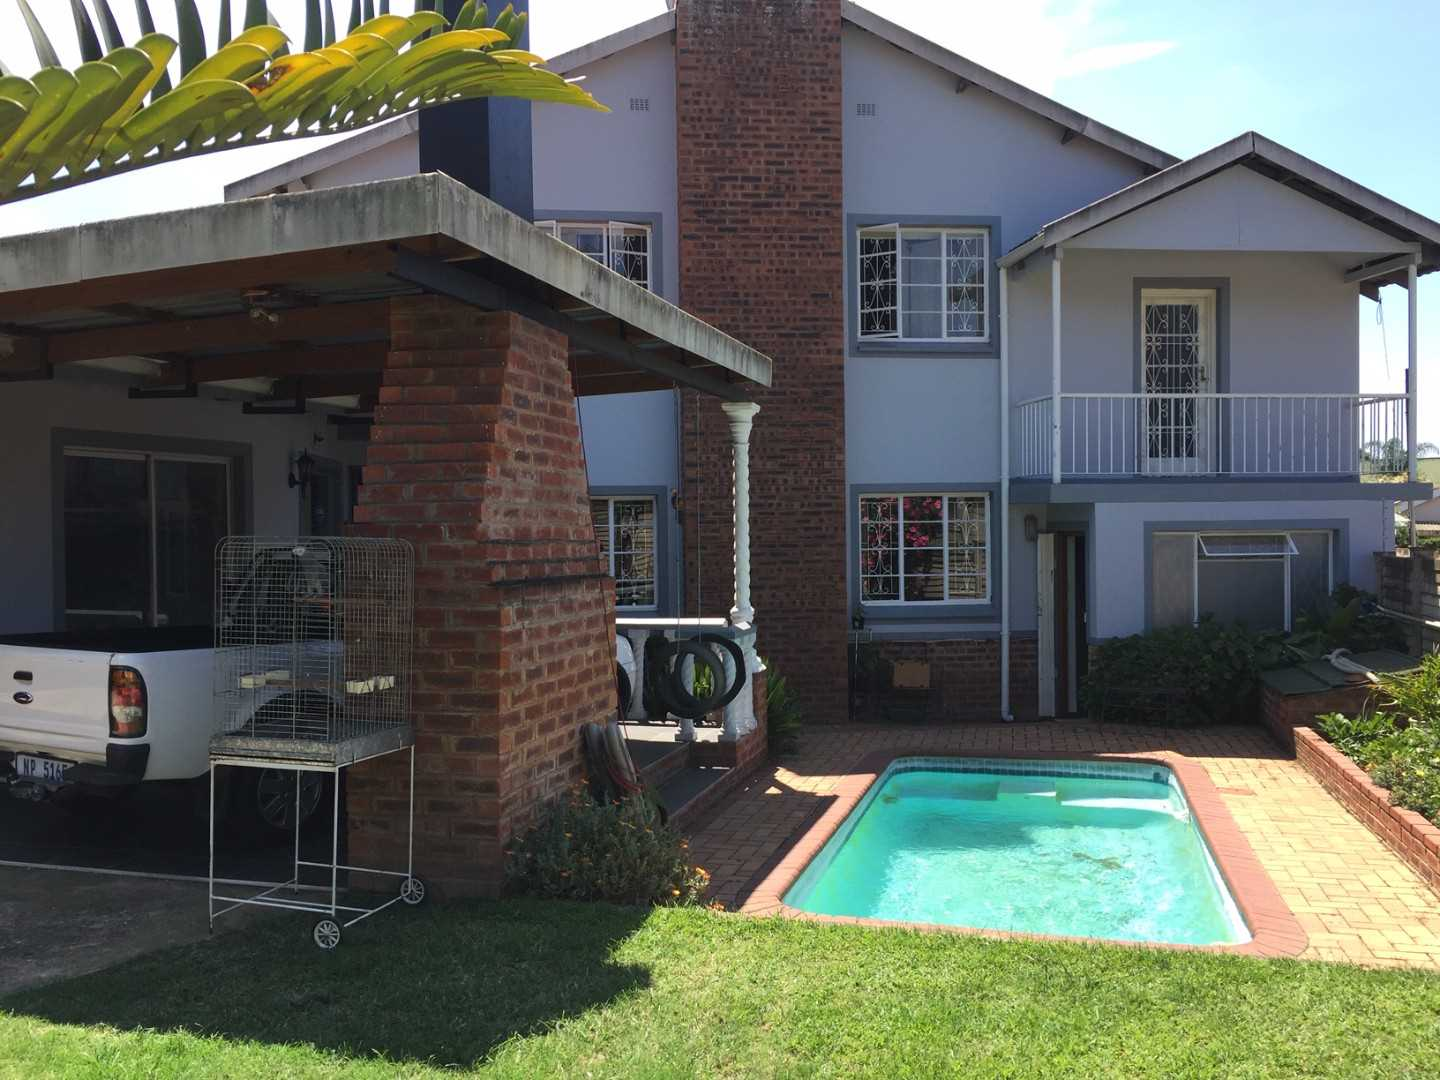 Townhouse with attached flatlet